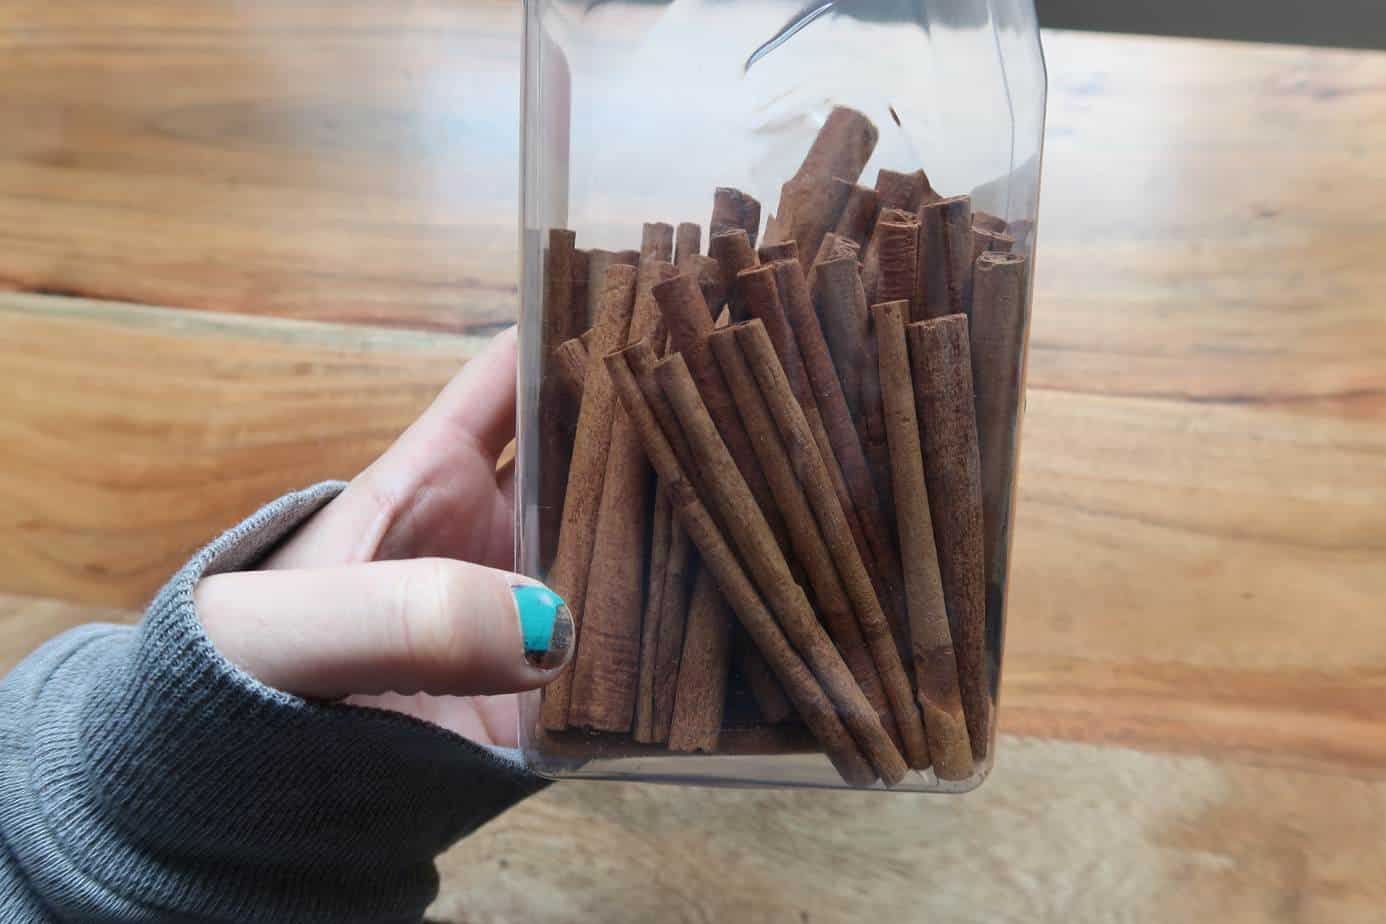 cheap cinnamon sticks at BJs